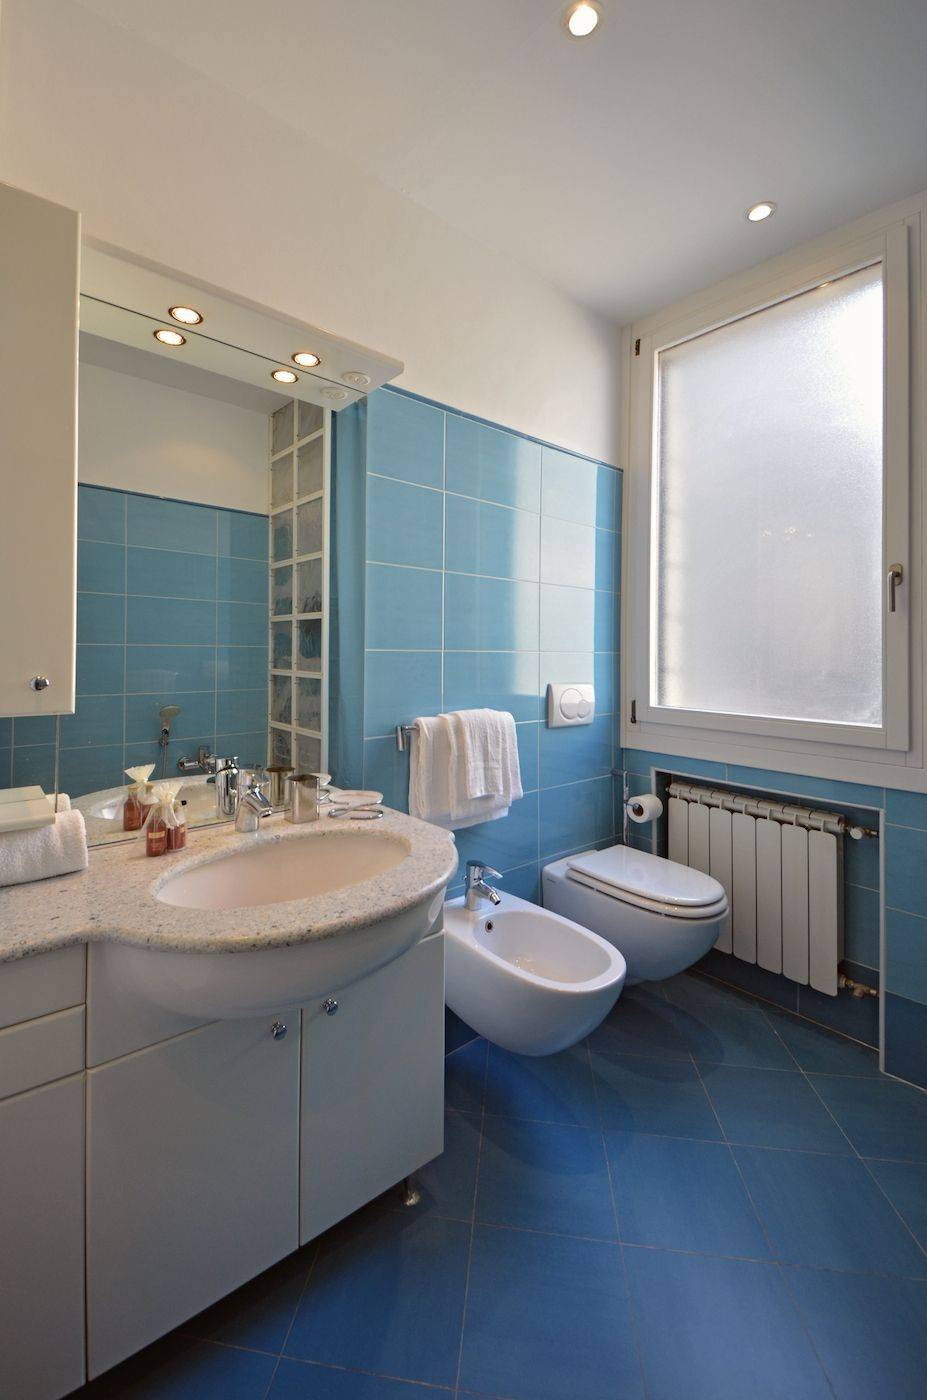 large bathroom with bathtub and washing machine